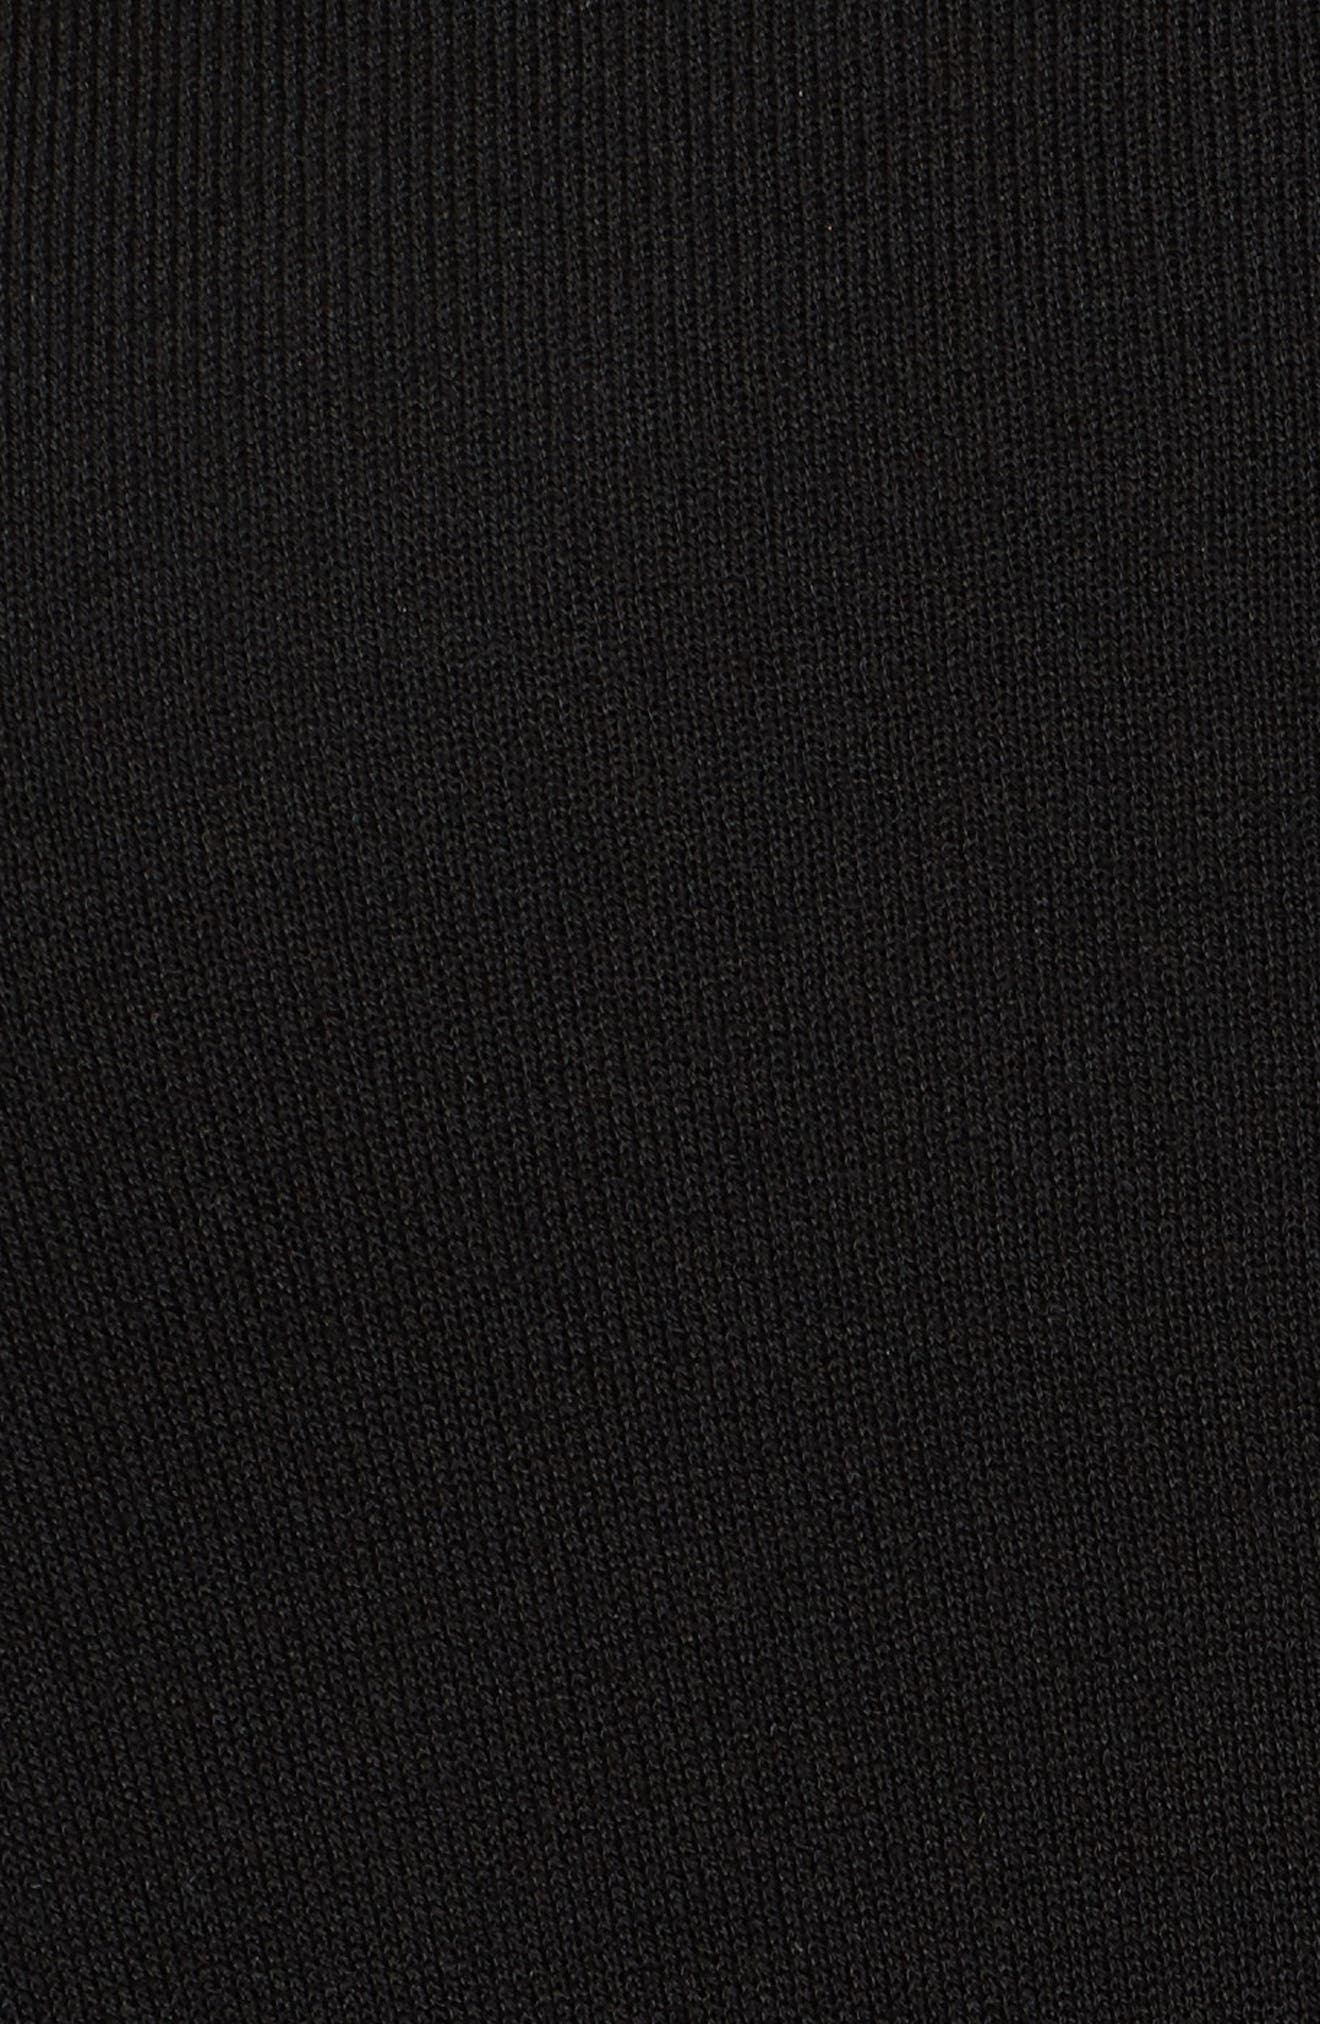 Tencel<sup>®</sup> Lyocell Lyocell Knit Sweater,                             Alternate thumbnail 5, color,                             Black